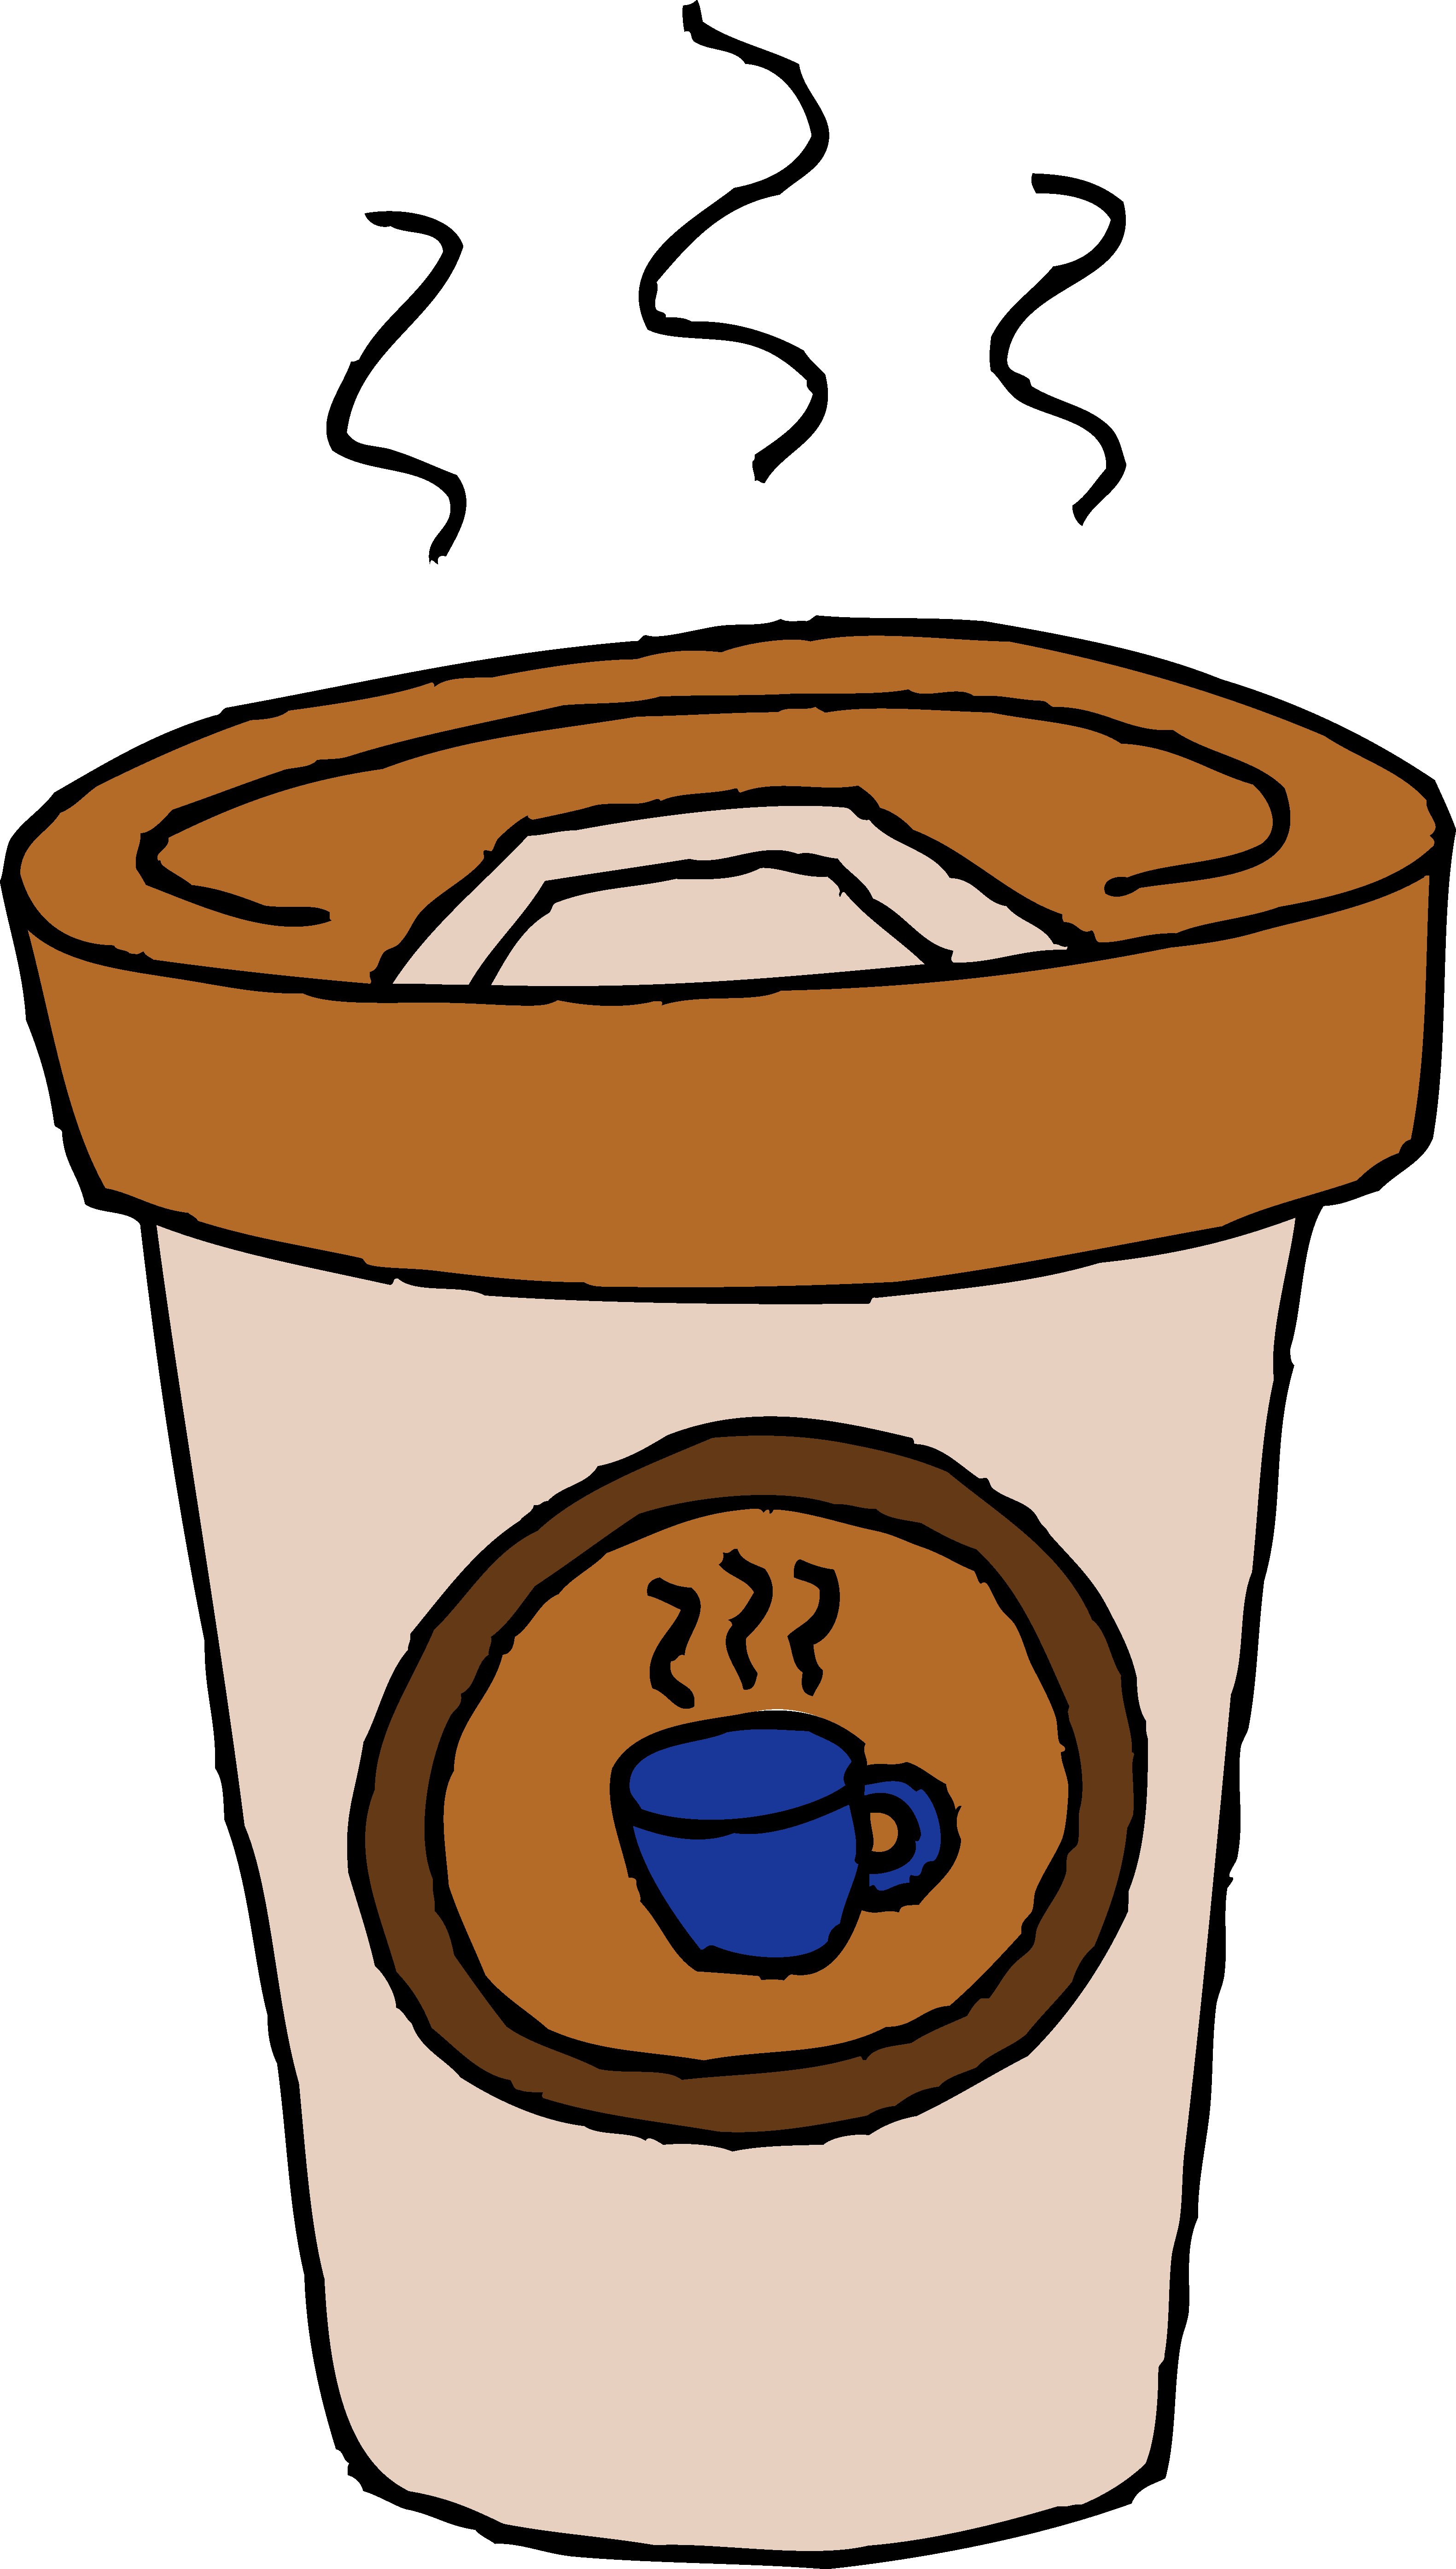 jpg transparent download Hot cafe latte clip. Dj clipart.